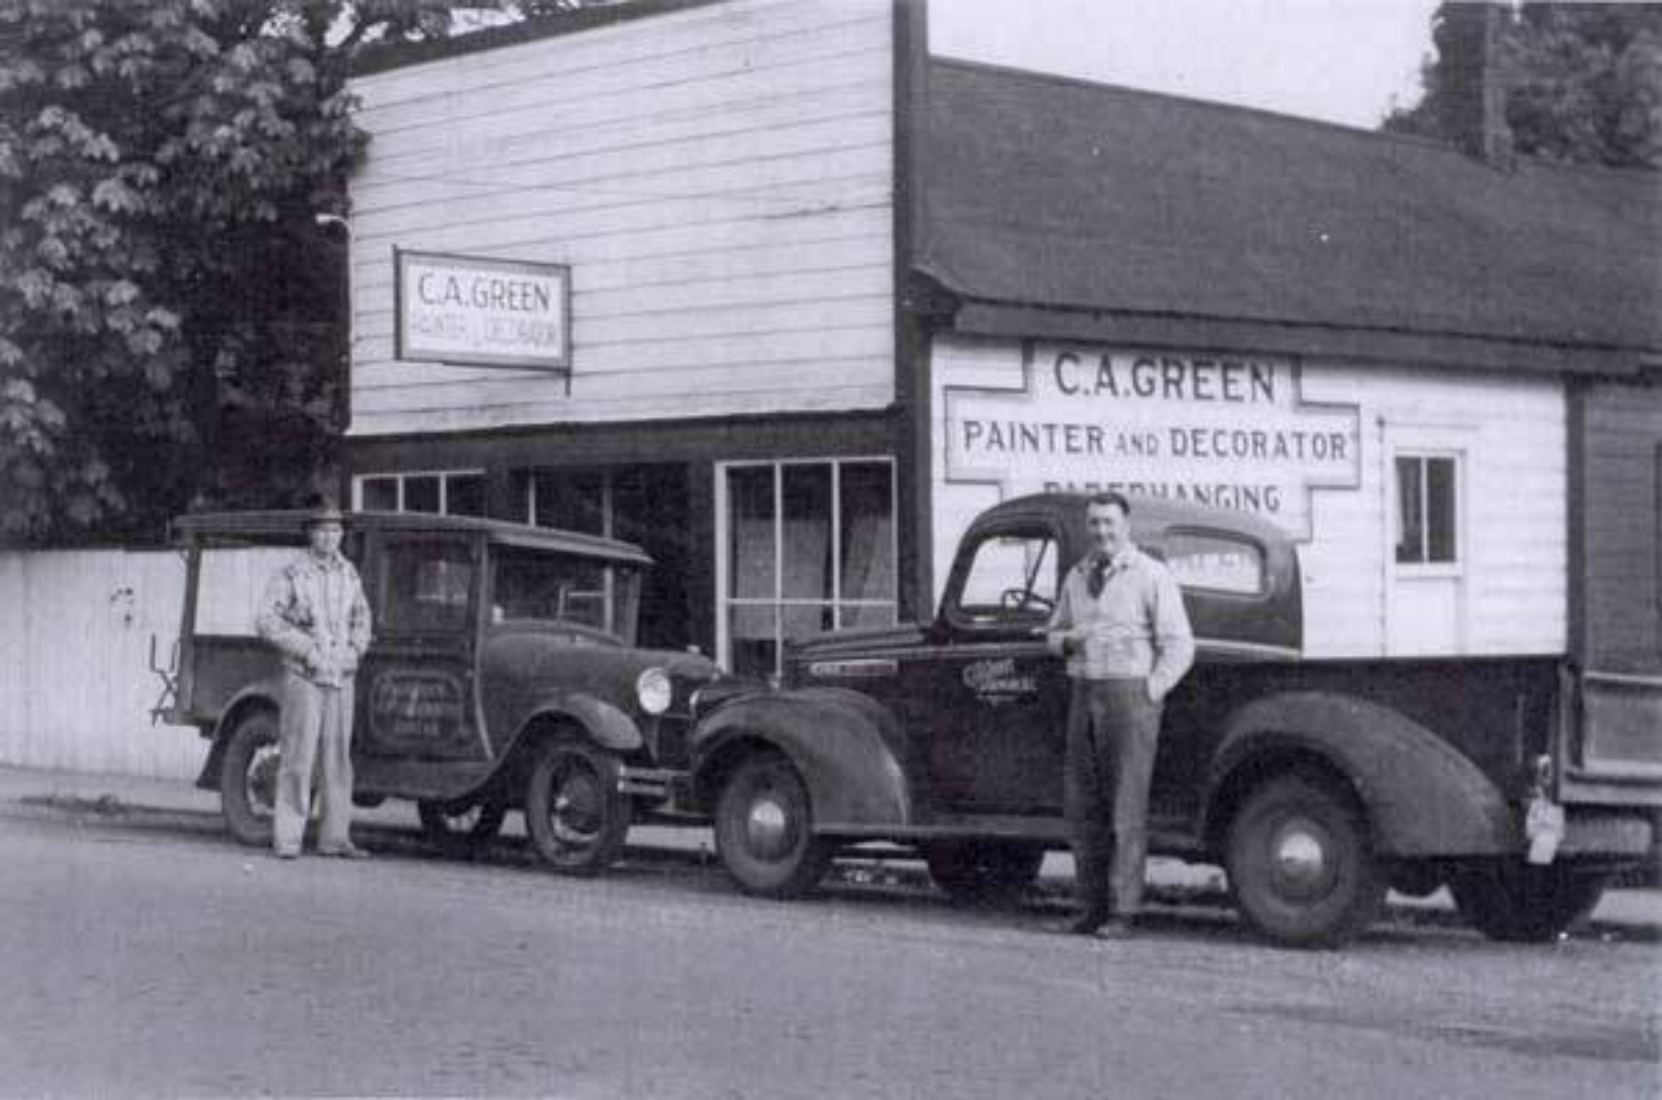 Claude Green (right) in front of his business building at 161 Kenneth Street, circa 1940. The sign on the exterior wall behind Claude Green is still visible on 161 Kenneth Street today